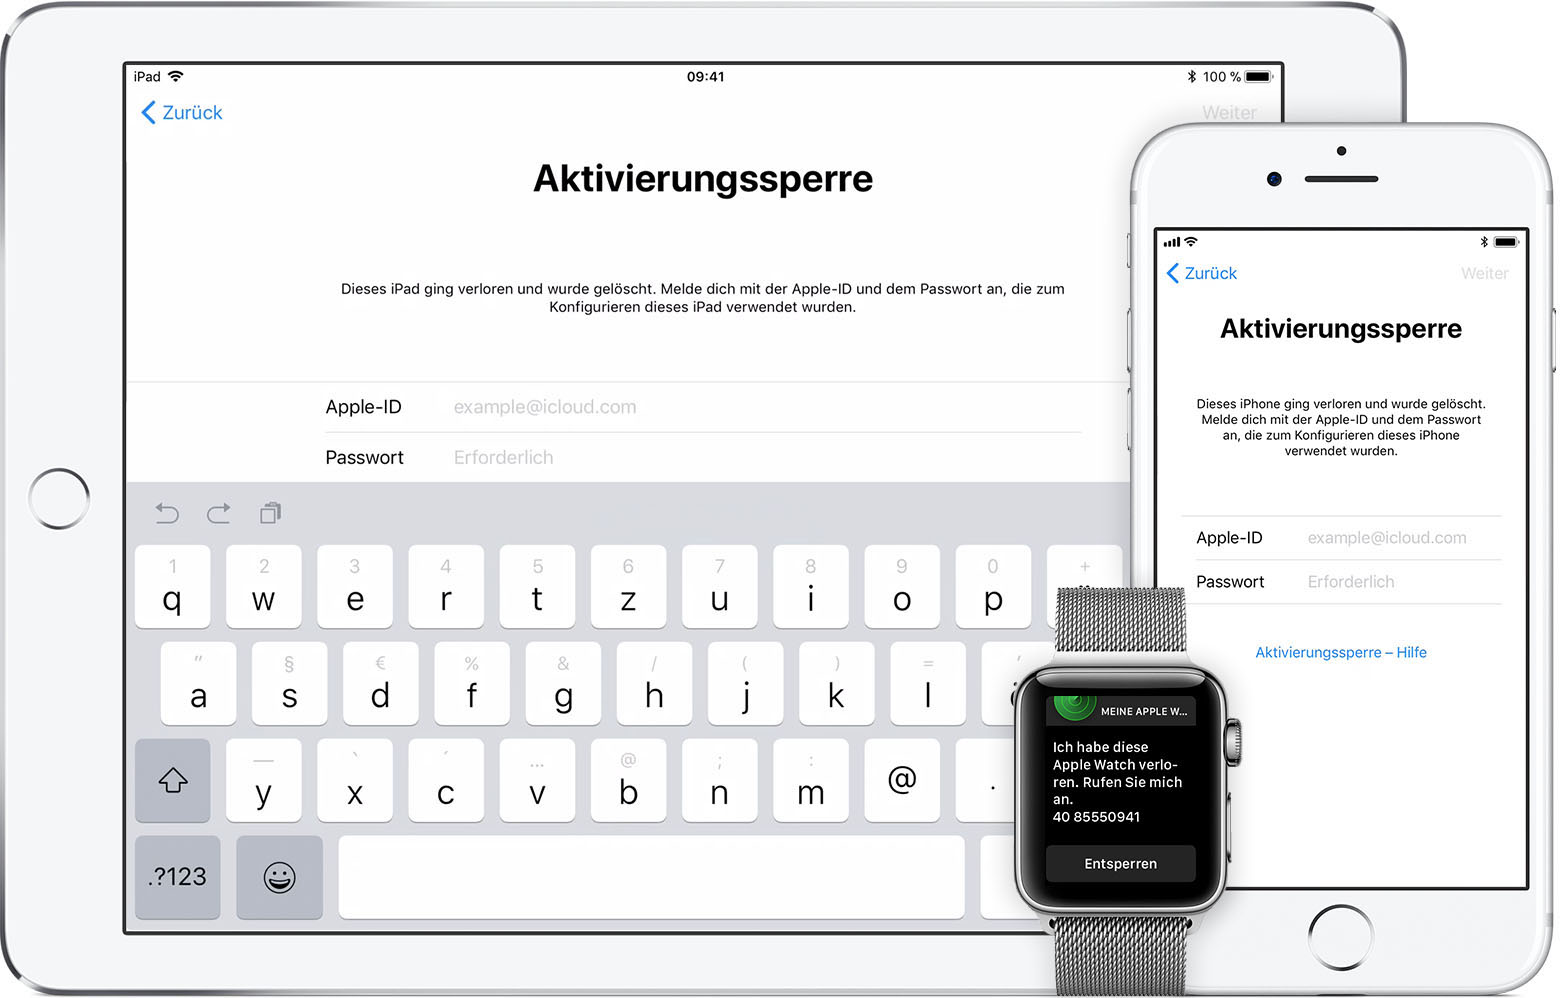 apple iphone support aktivierungssperre quot mein iphone suchen quot apple support 1733